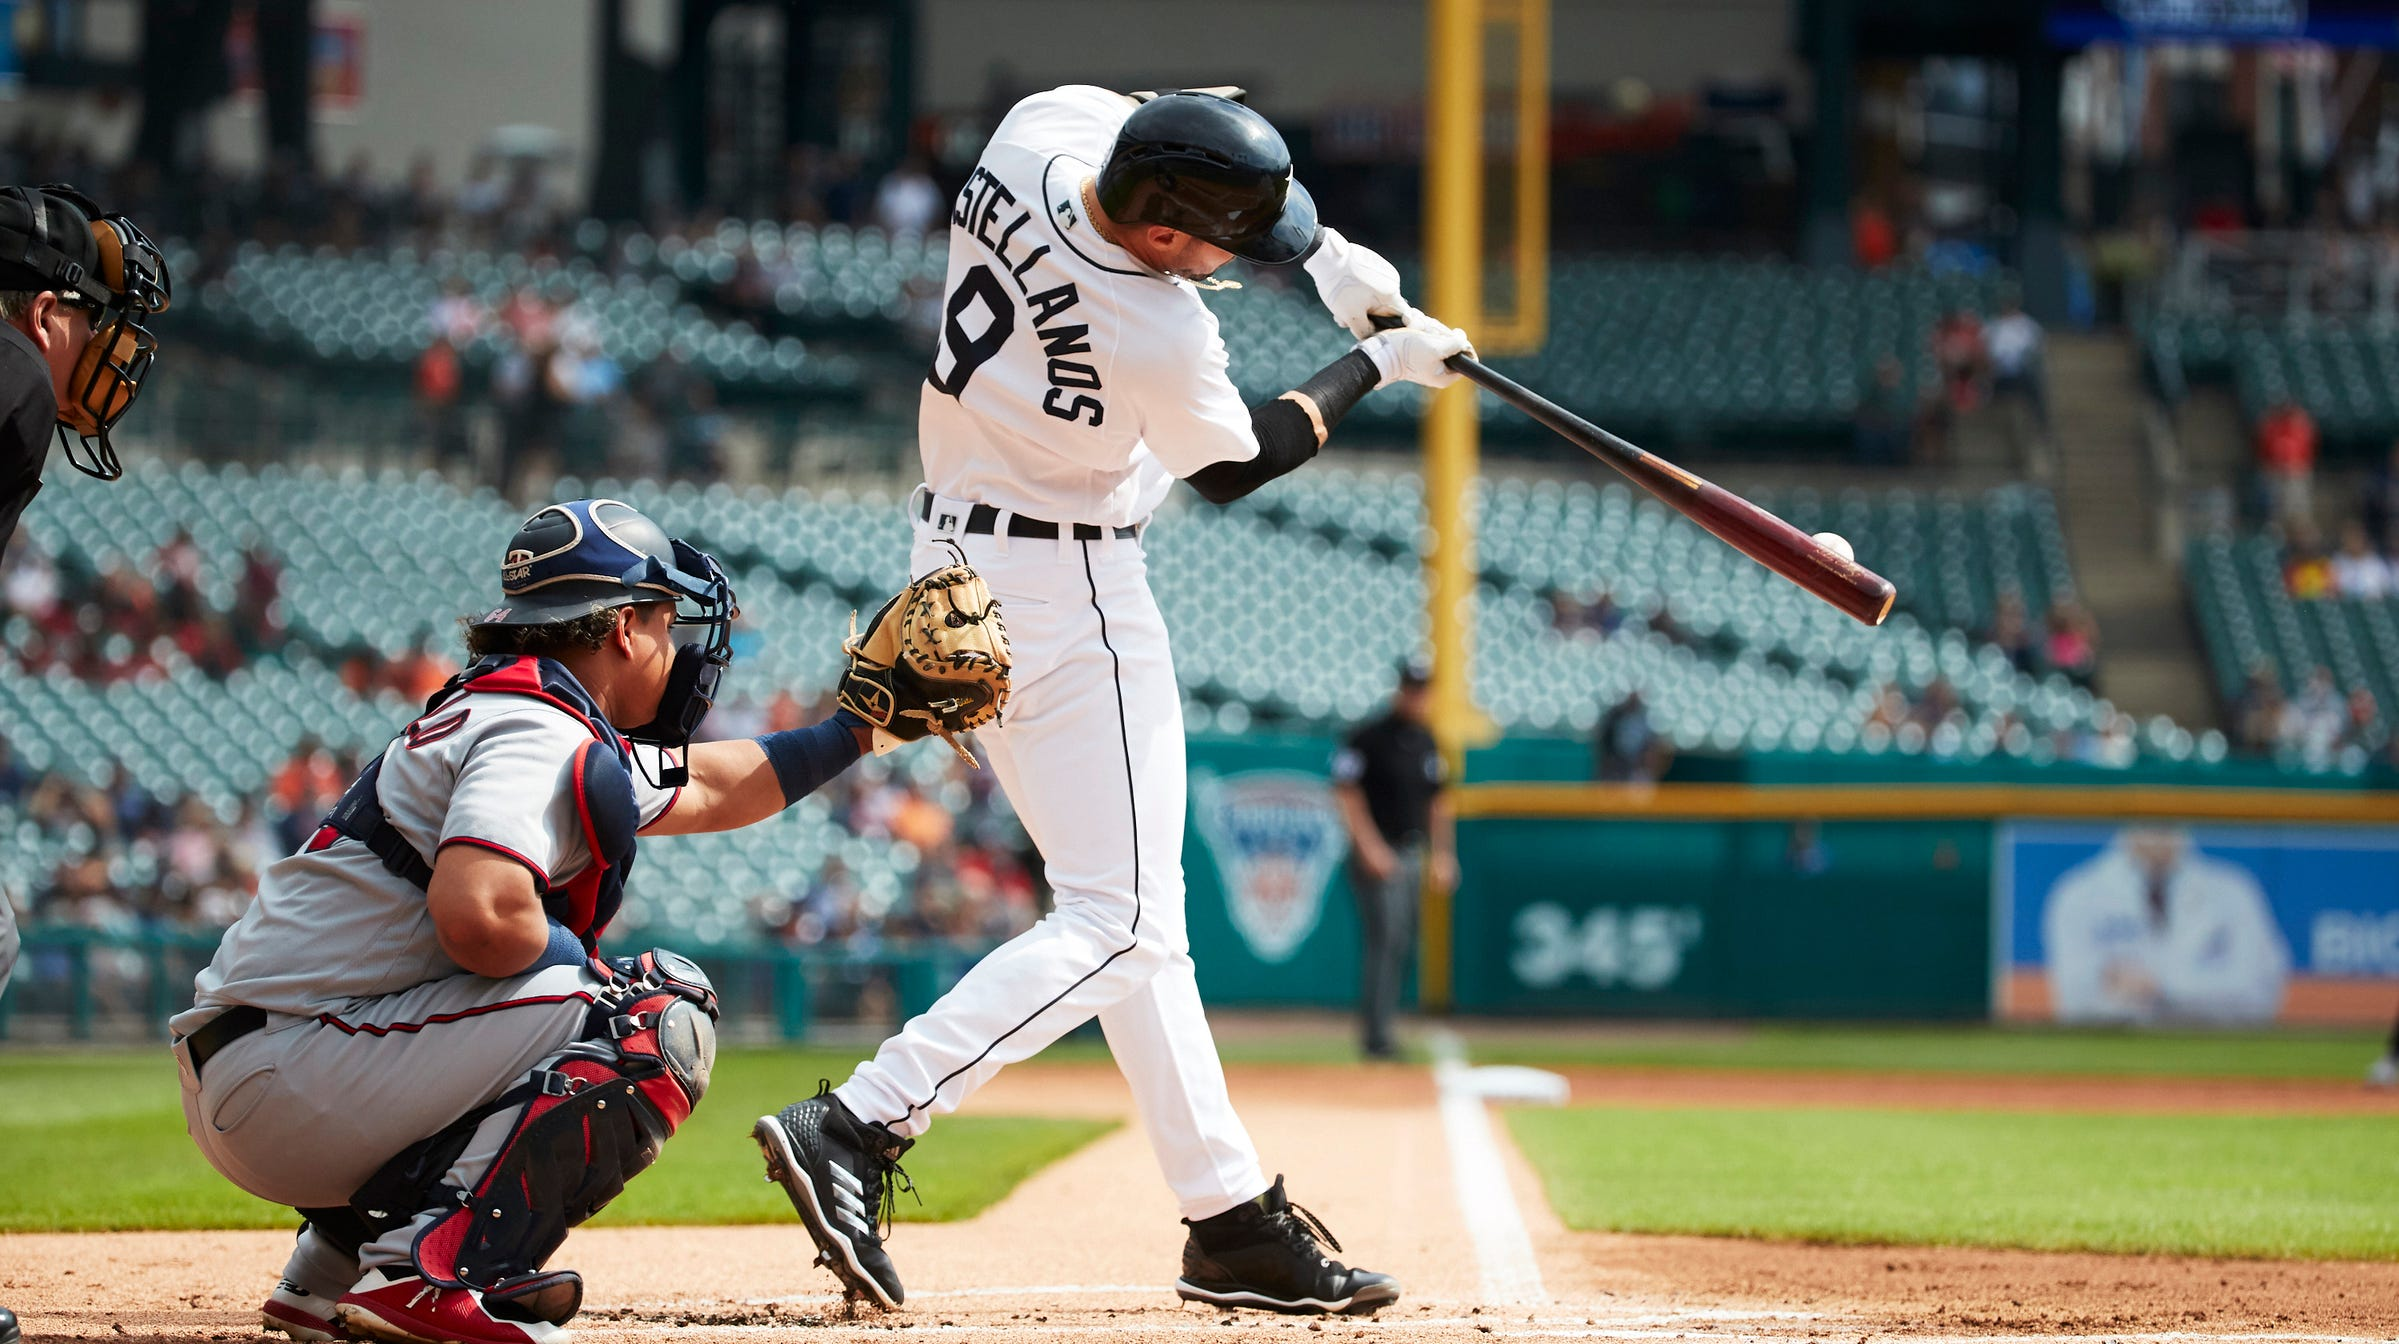 Detroit Tigers drop Spencer Turnbull's first start, 8-2 to Twins